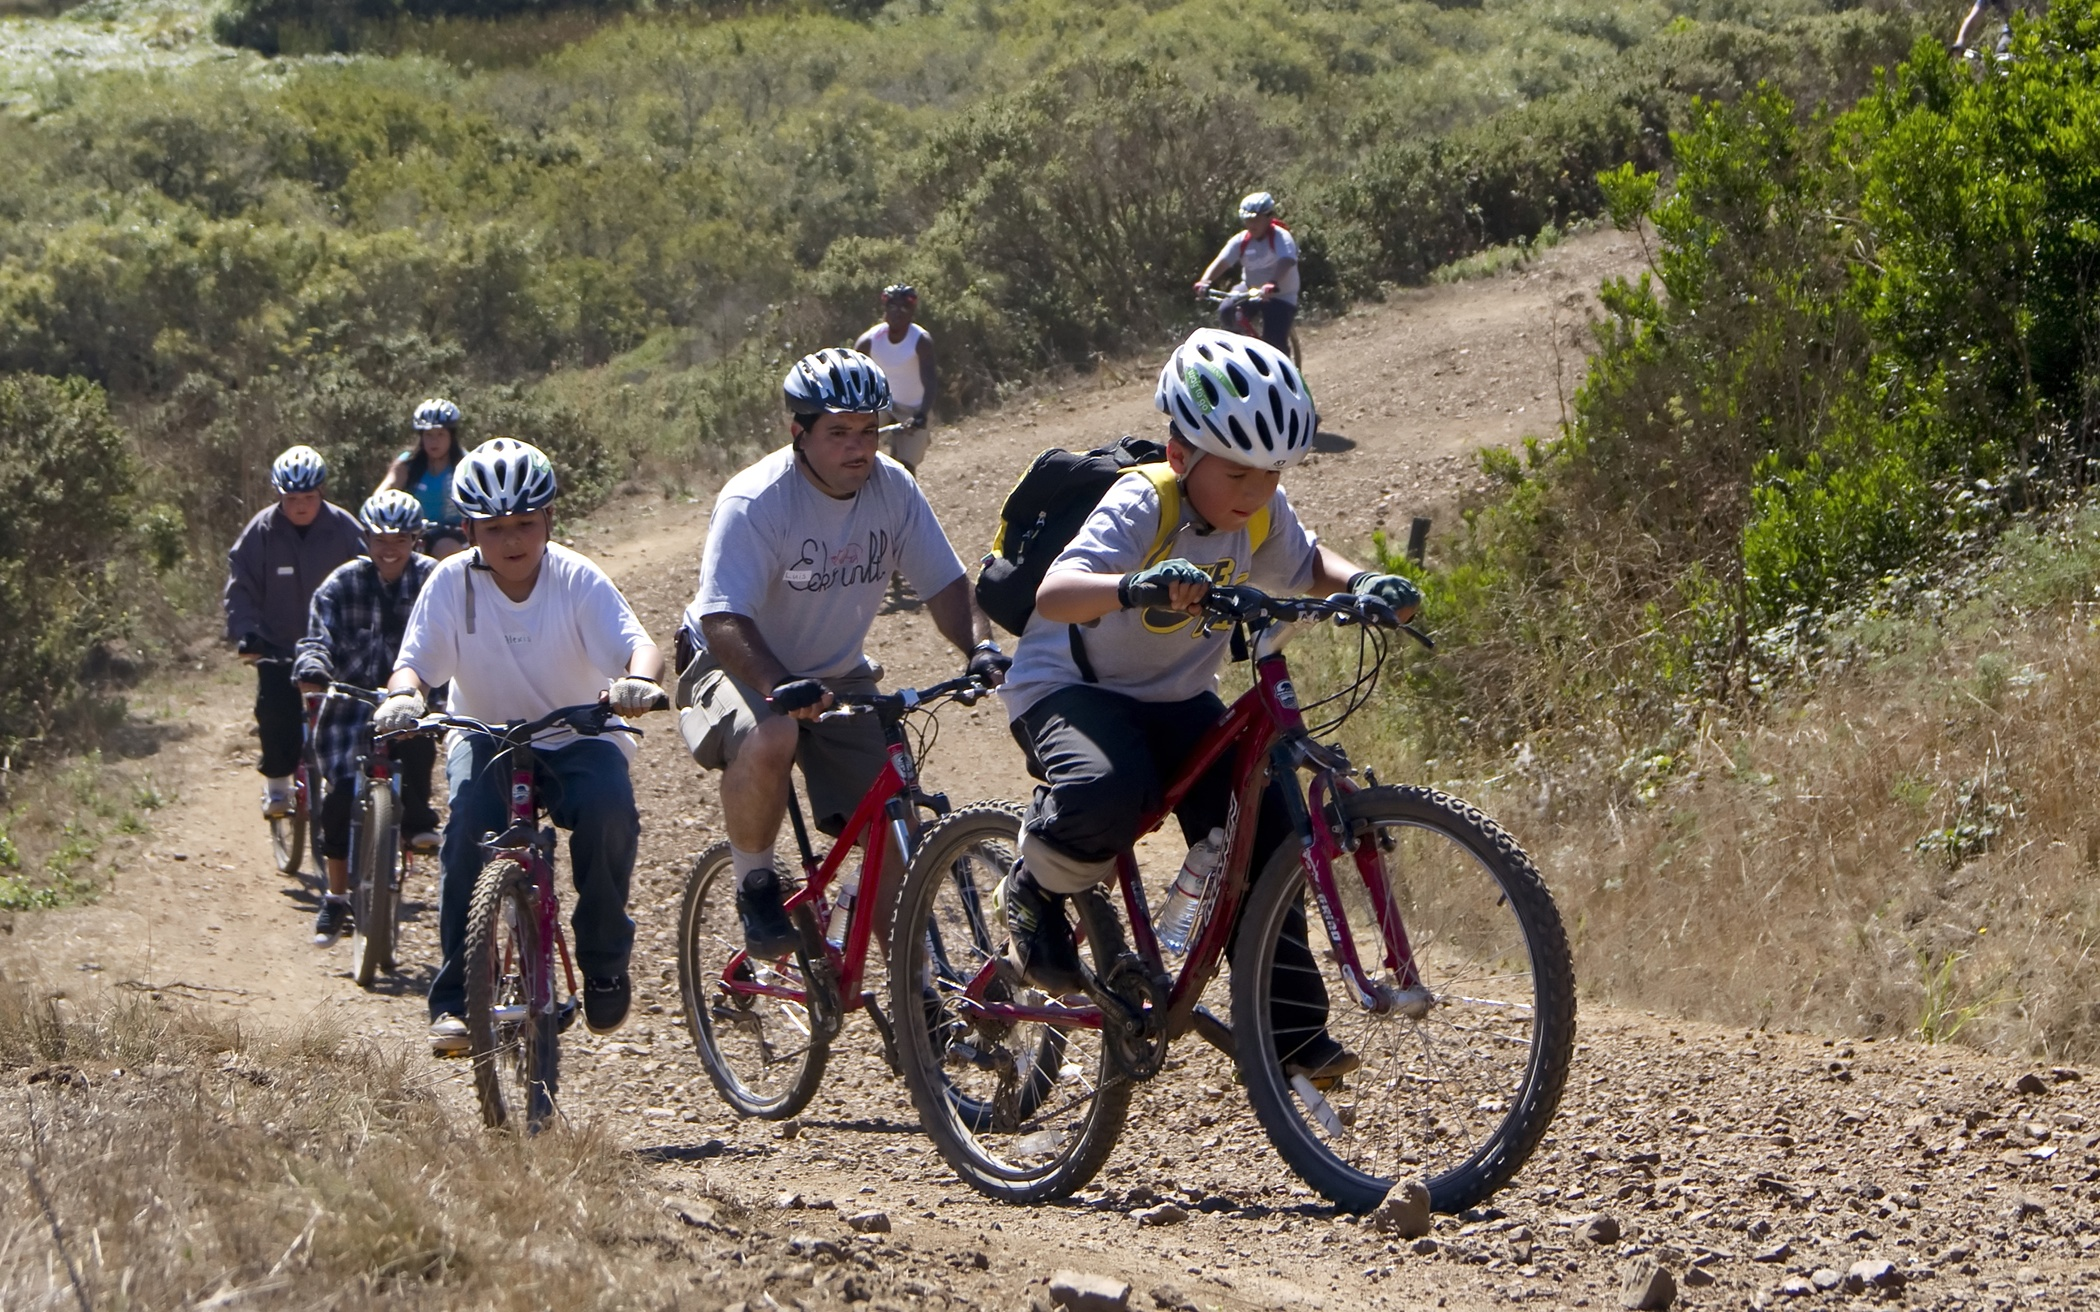 A previous biking trip for kids and their families